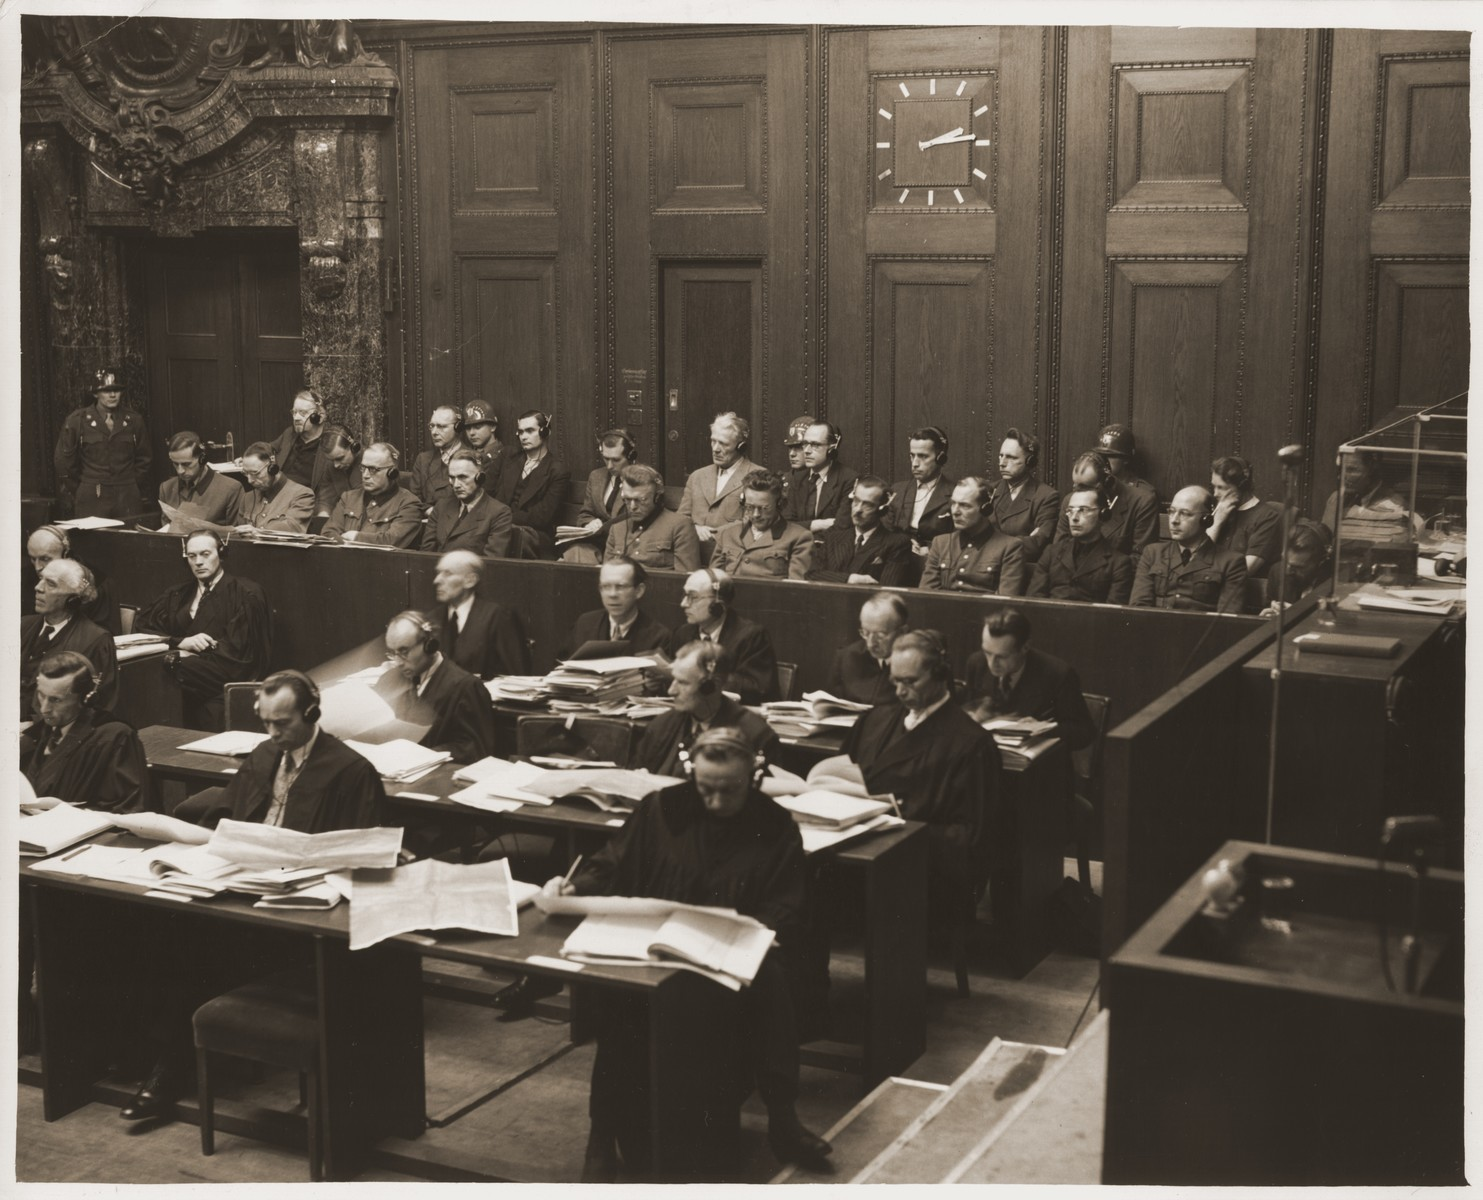 The twenty-three defendants and their lawyers listen to the proceedings of the DoctorsTrial.